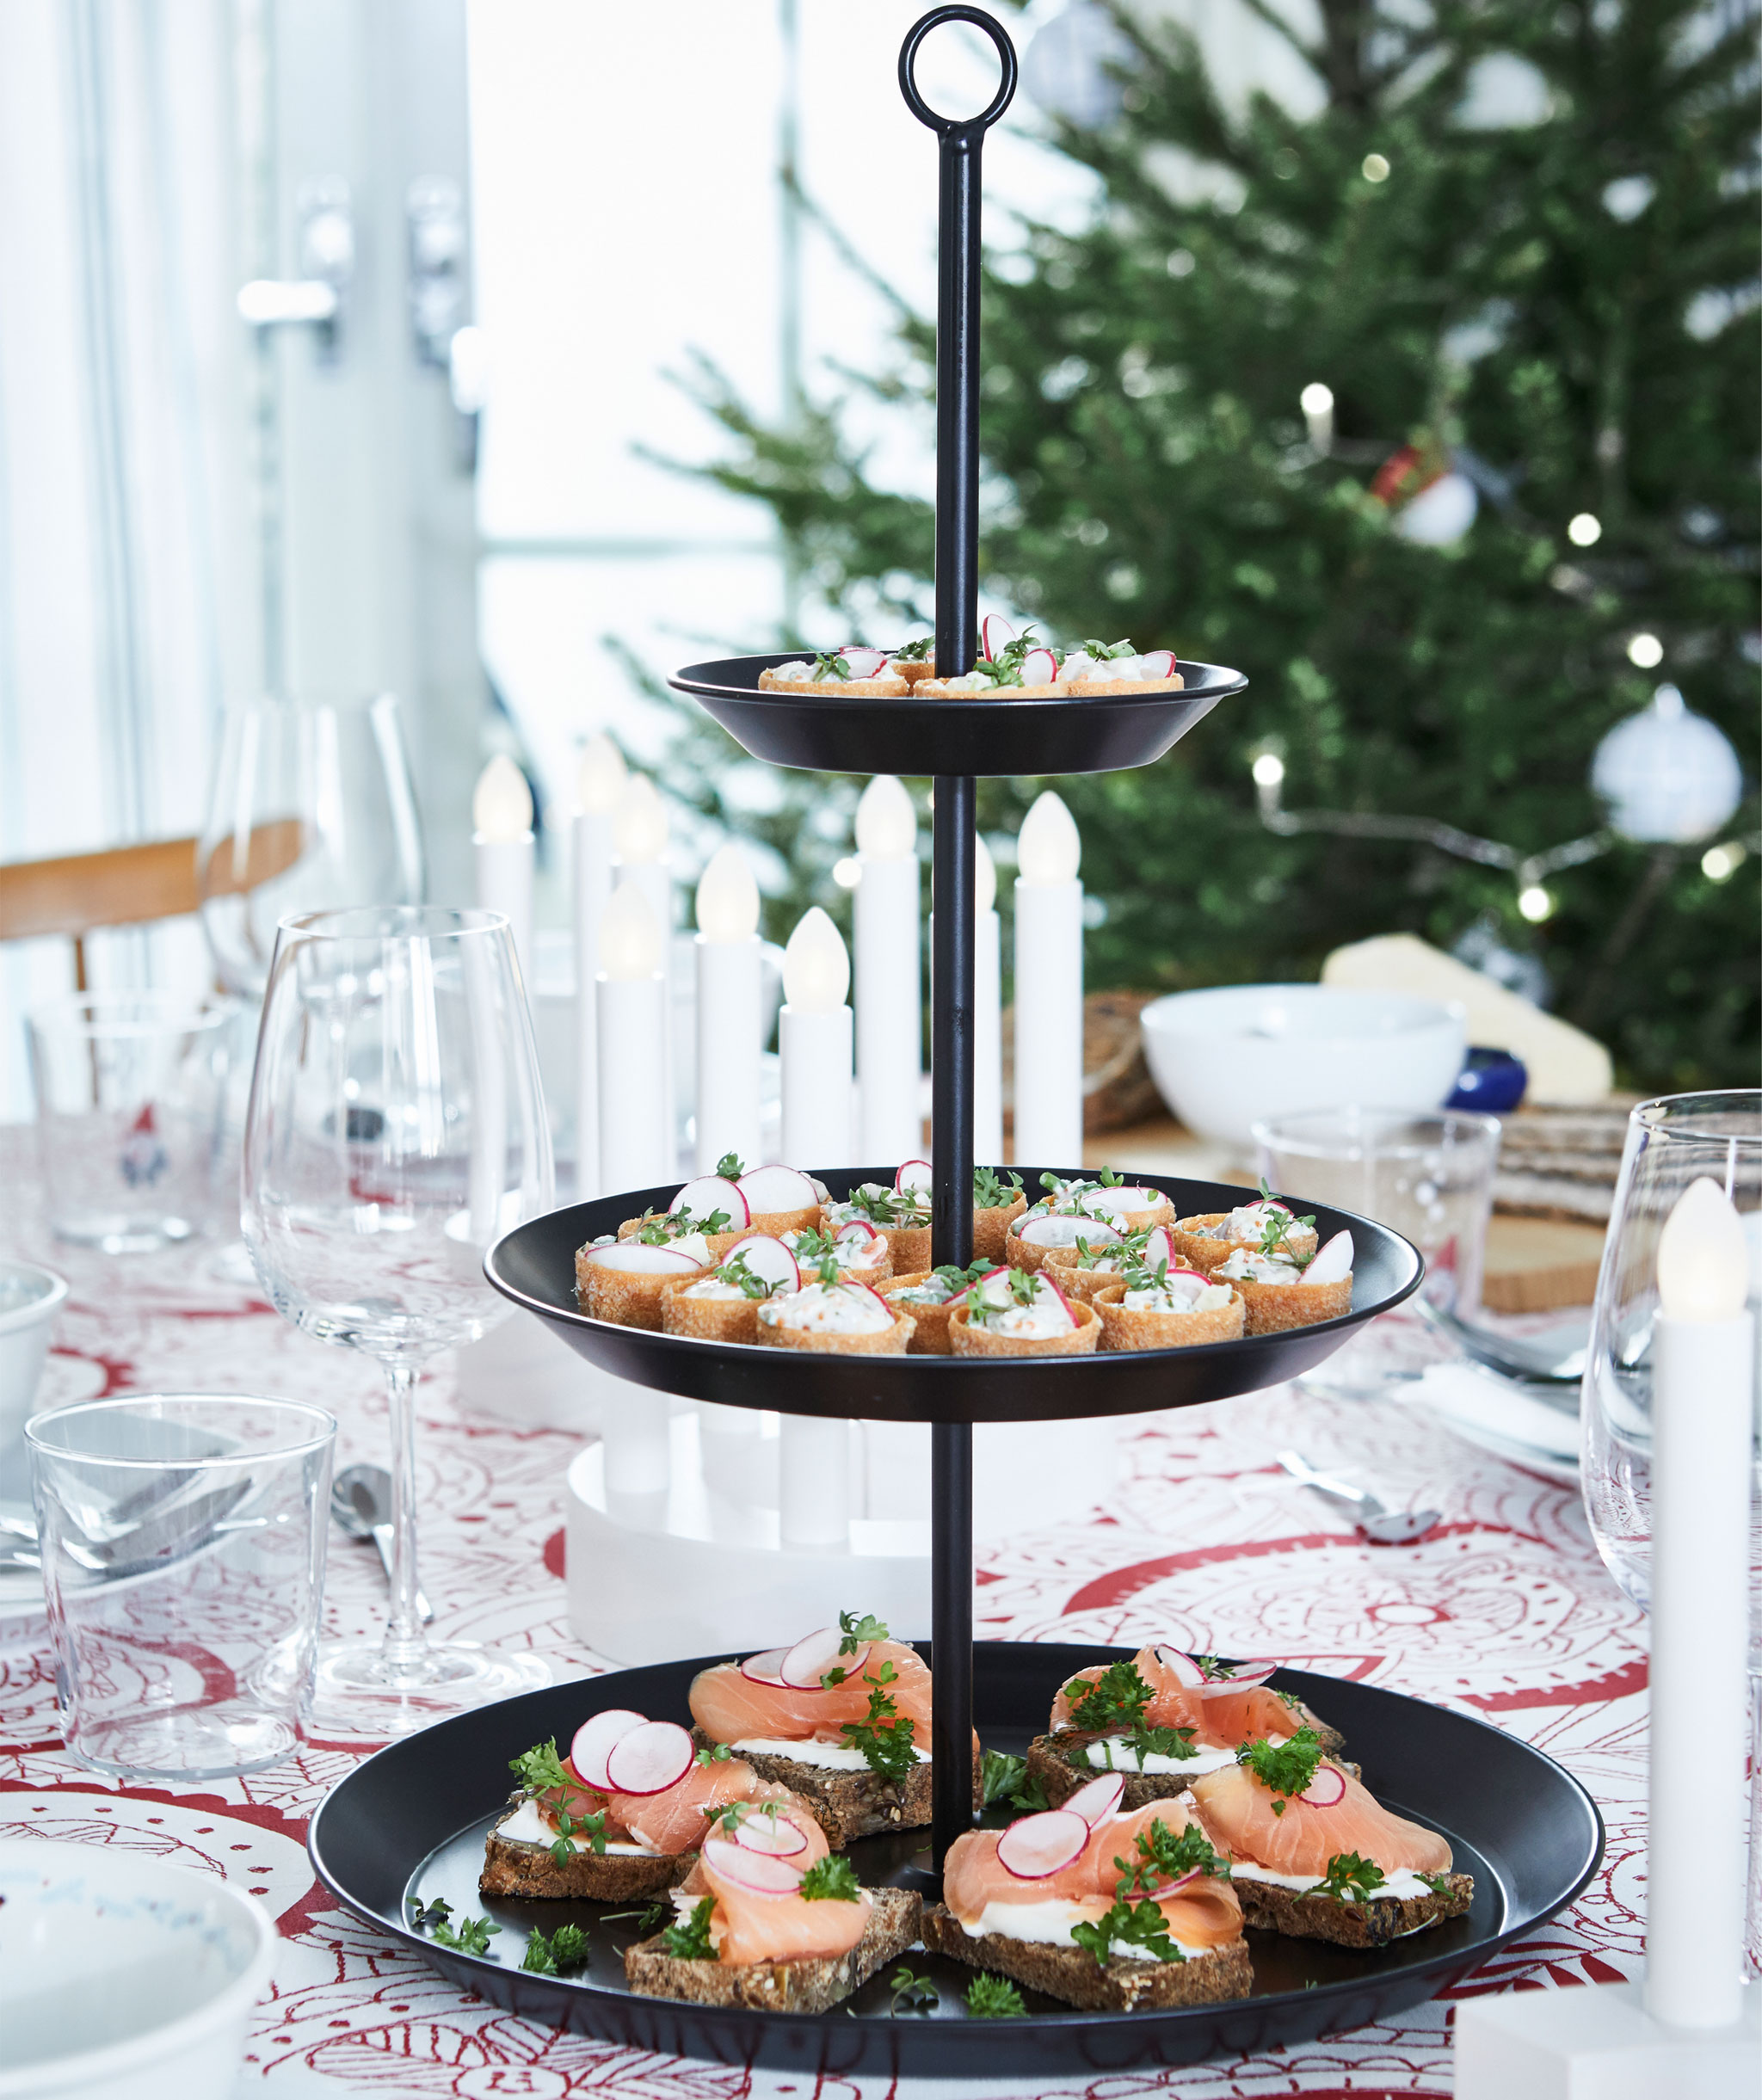 Serving stand filled with elaborate hors d'oeuvres, standing on a table set for a feast. Christmas tree in the background.